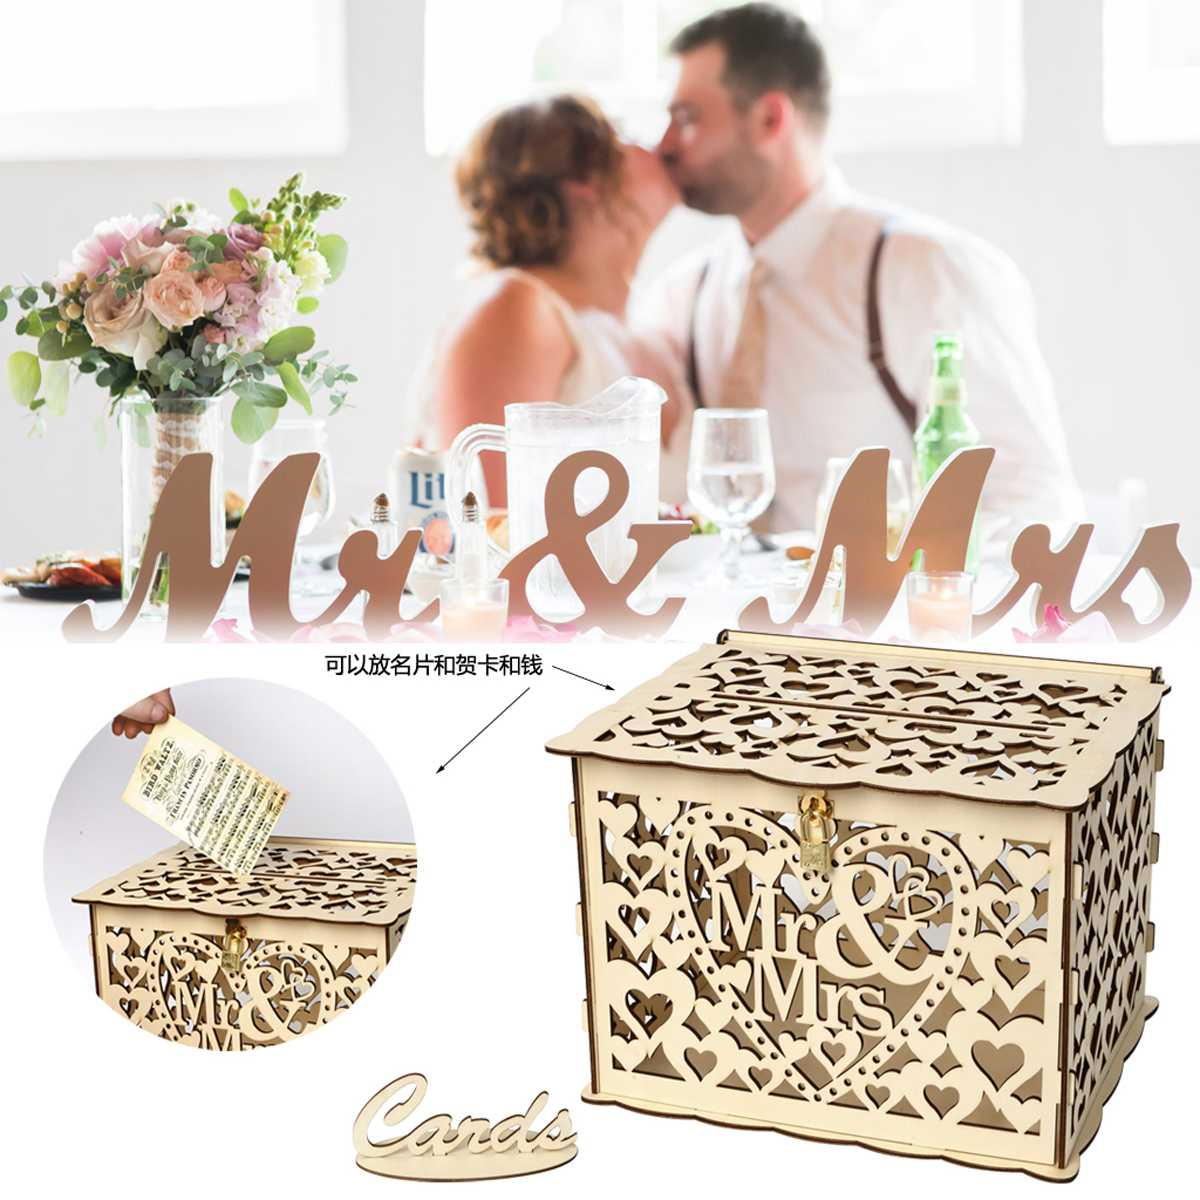 S/L DIY Wedding Gift Card Box Wooden Money Box With Lock Romantic Wedding Decoration Supplies For Birthday Party DIY Card BoxS/L DIY Wedding Gift Card Box Wooden Money Box With Lock Romantic Wedding Decoration Supplies For Birthday Party DIY Card Box